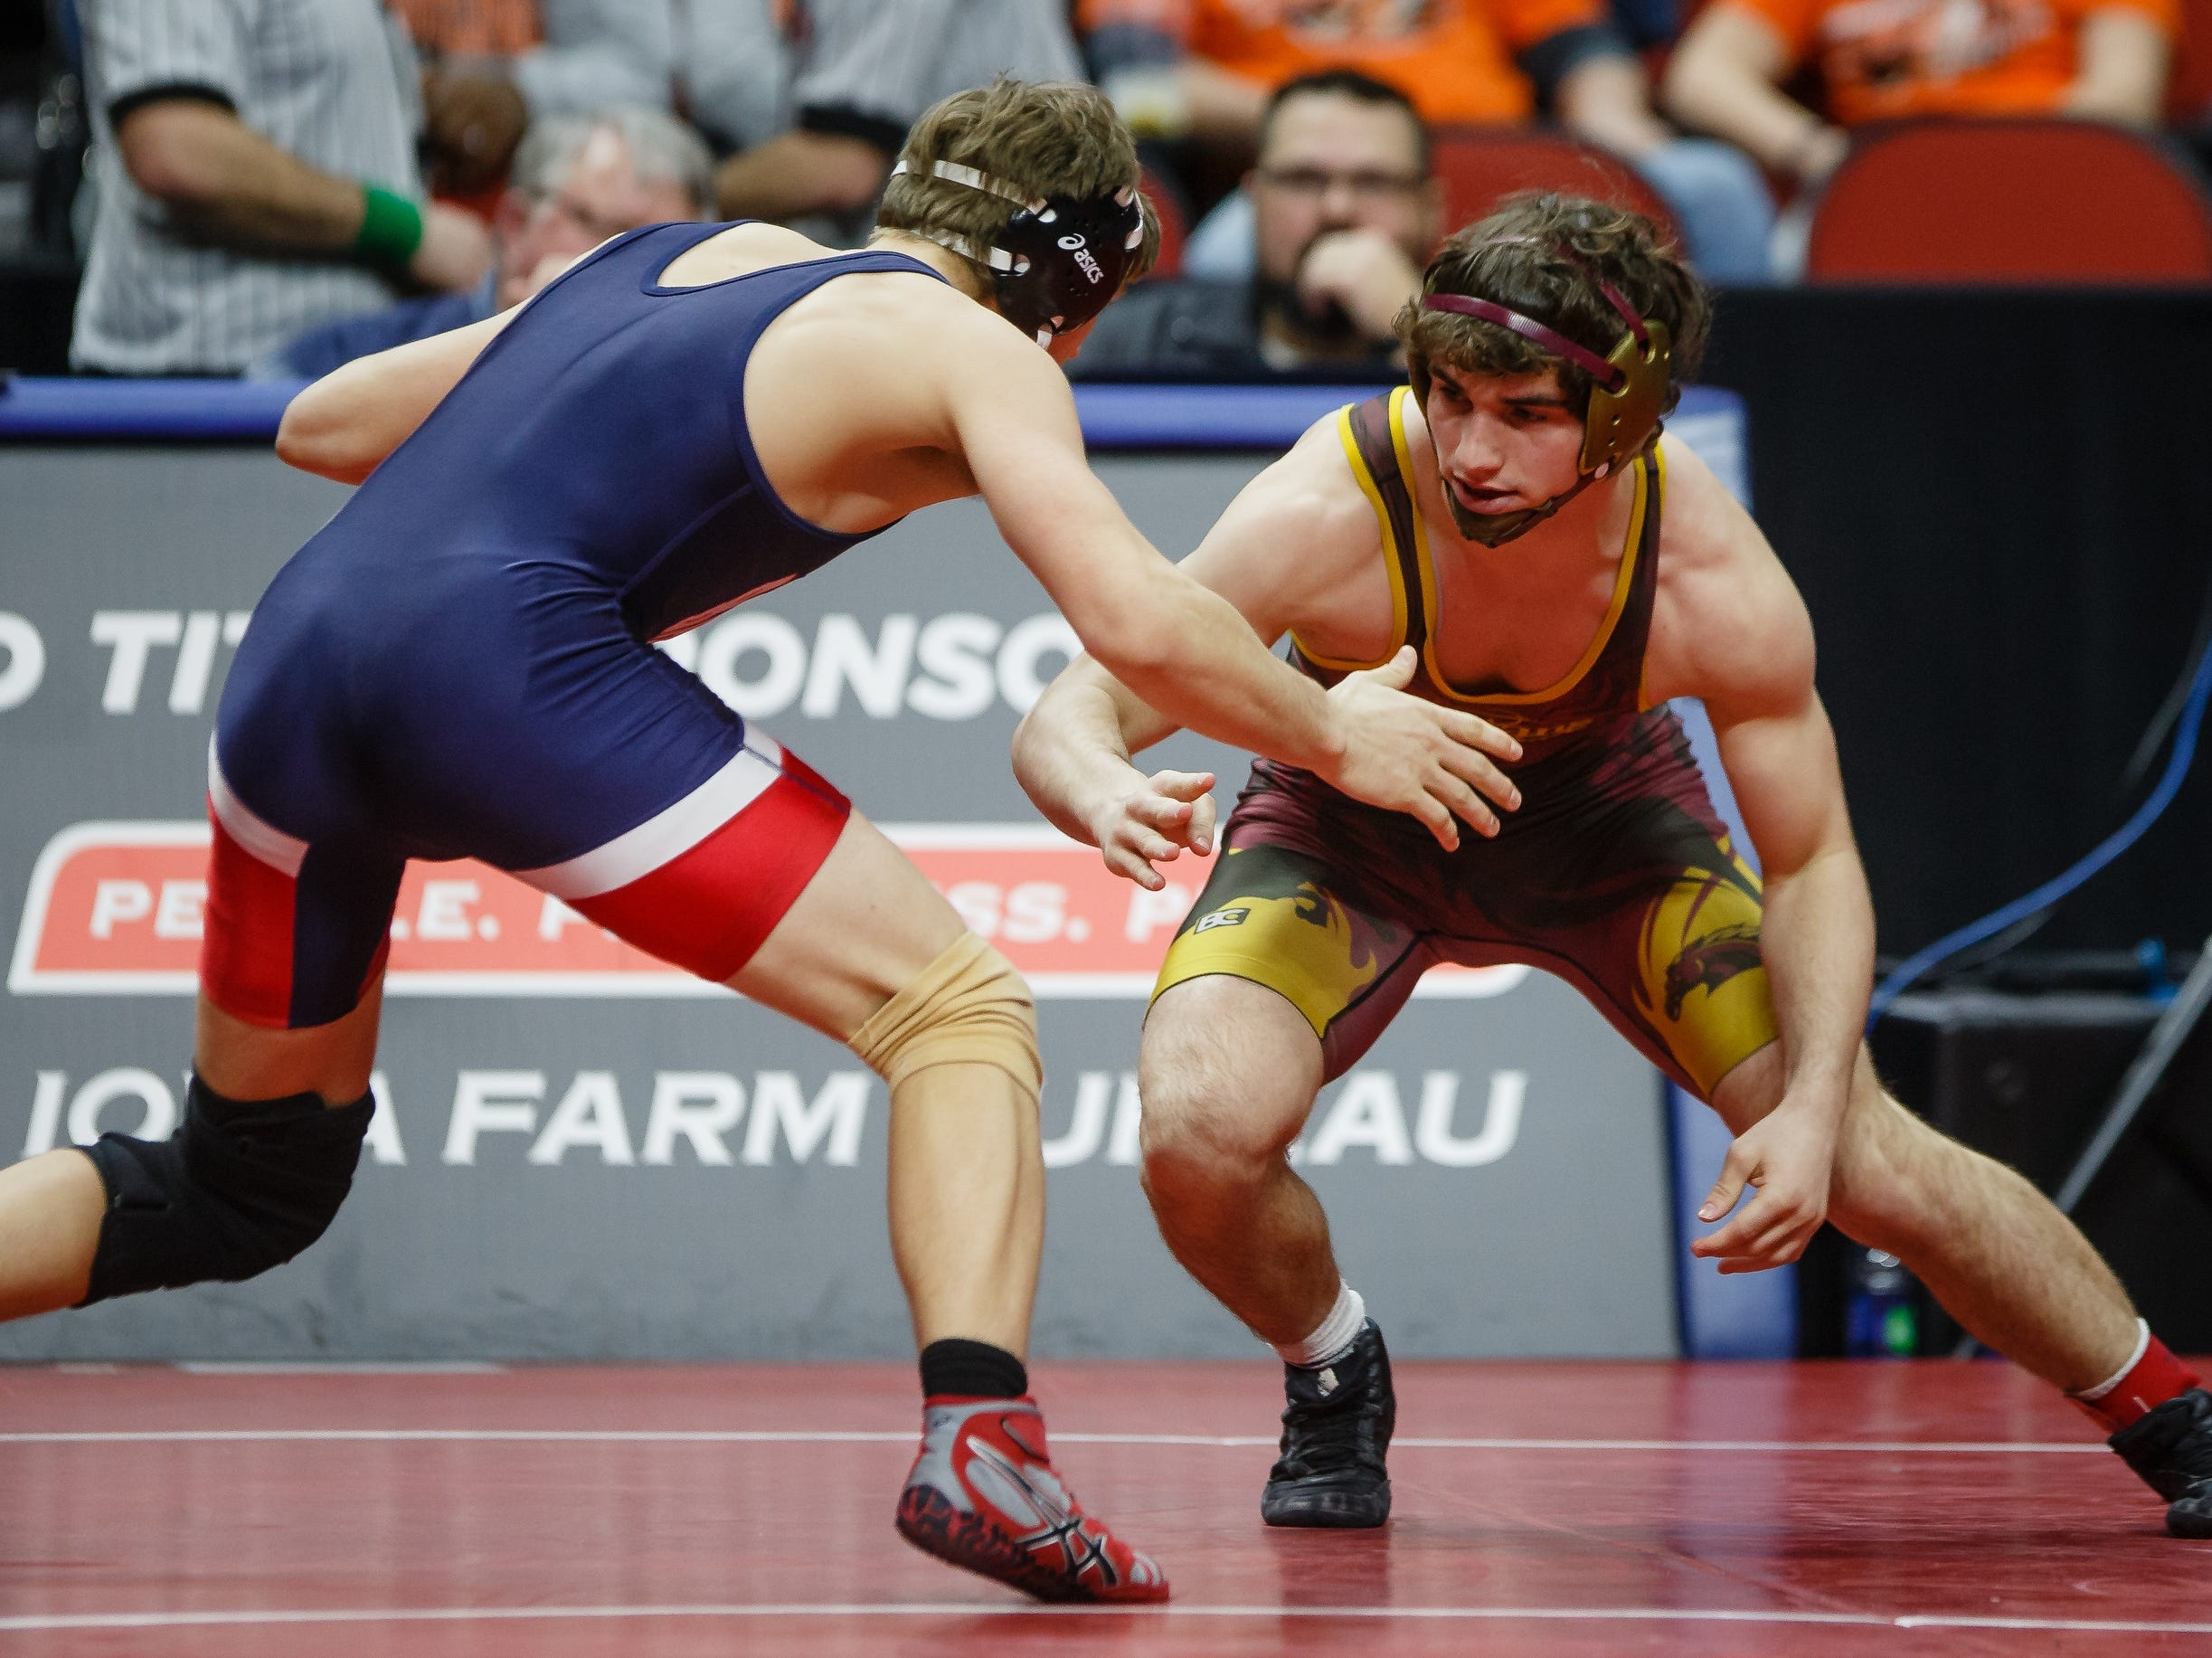 Wes Cummings of PCM wrestles Skyler Noftsger of Ballard during their class 2A, 160-pound state championship semifinal match on Friday in Des Moines. Skyler Noftsger moves on with a 10-7 decision.